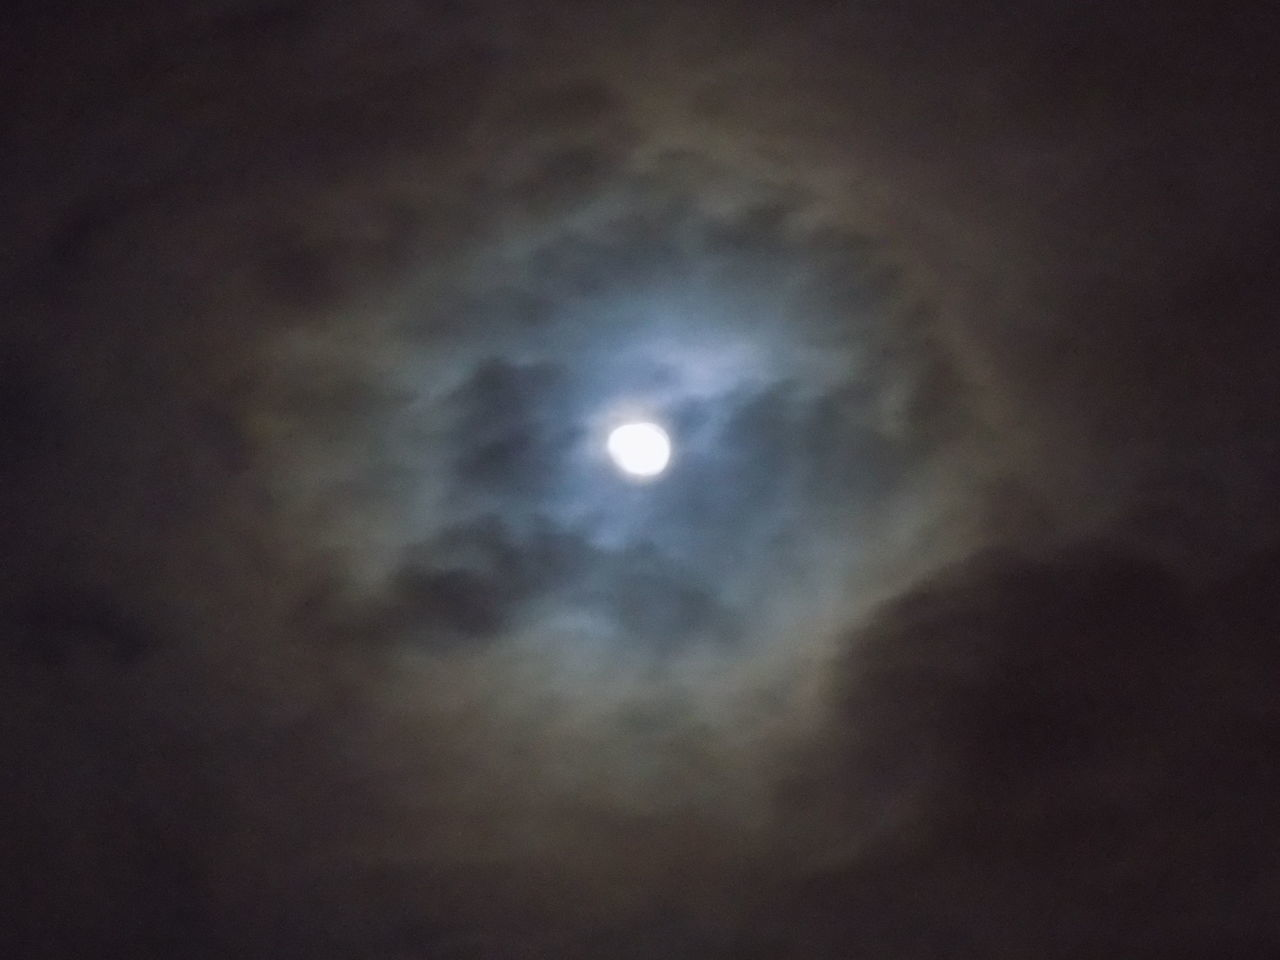 moon, scenics, sky, nature, cloud - sky, beauty in nature, night, astronomy, tranquility, sky only, low angle view, dark, tranquil scene, idyllic, outdoors, moonlight, space, no people, space exploration, sunset, half moon, solar eclipse, crescent